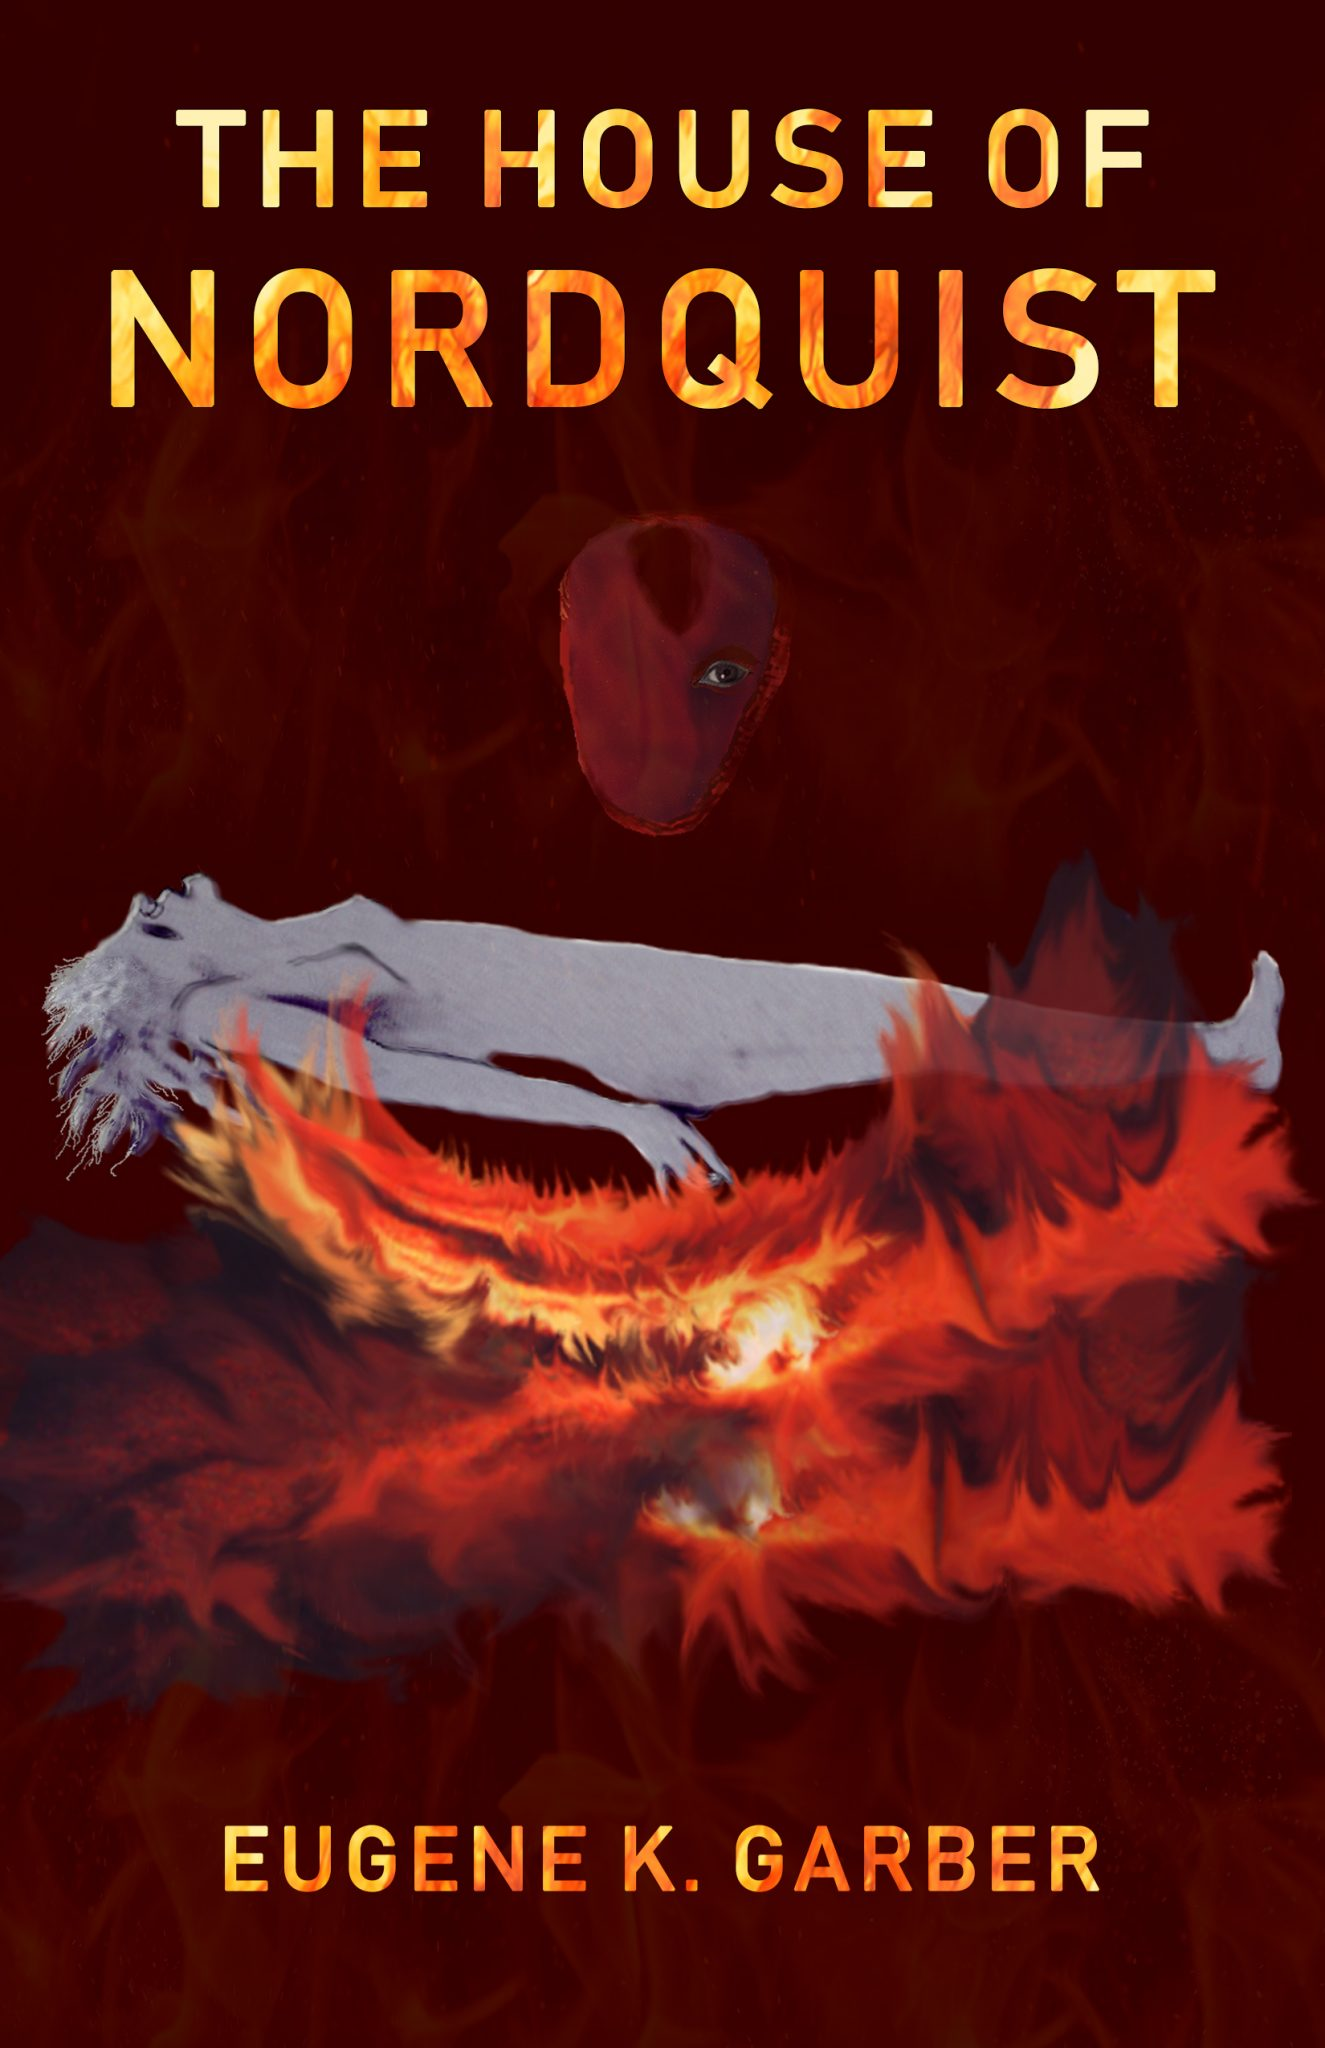 The House of Nordquist, Book 3 of The Eroica Trilogy